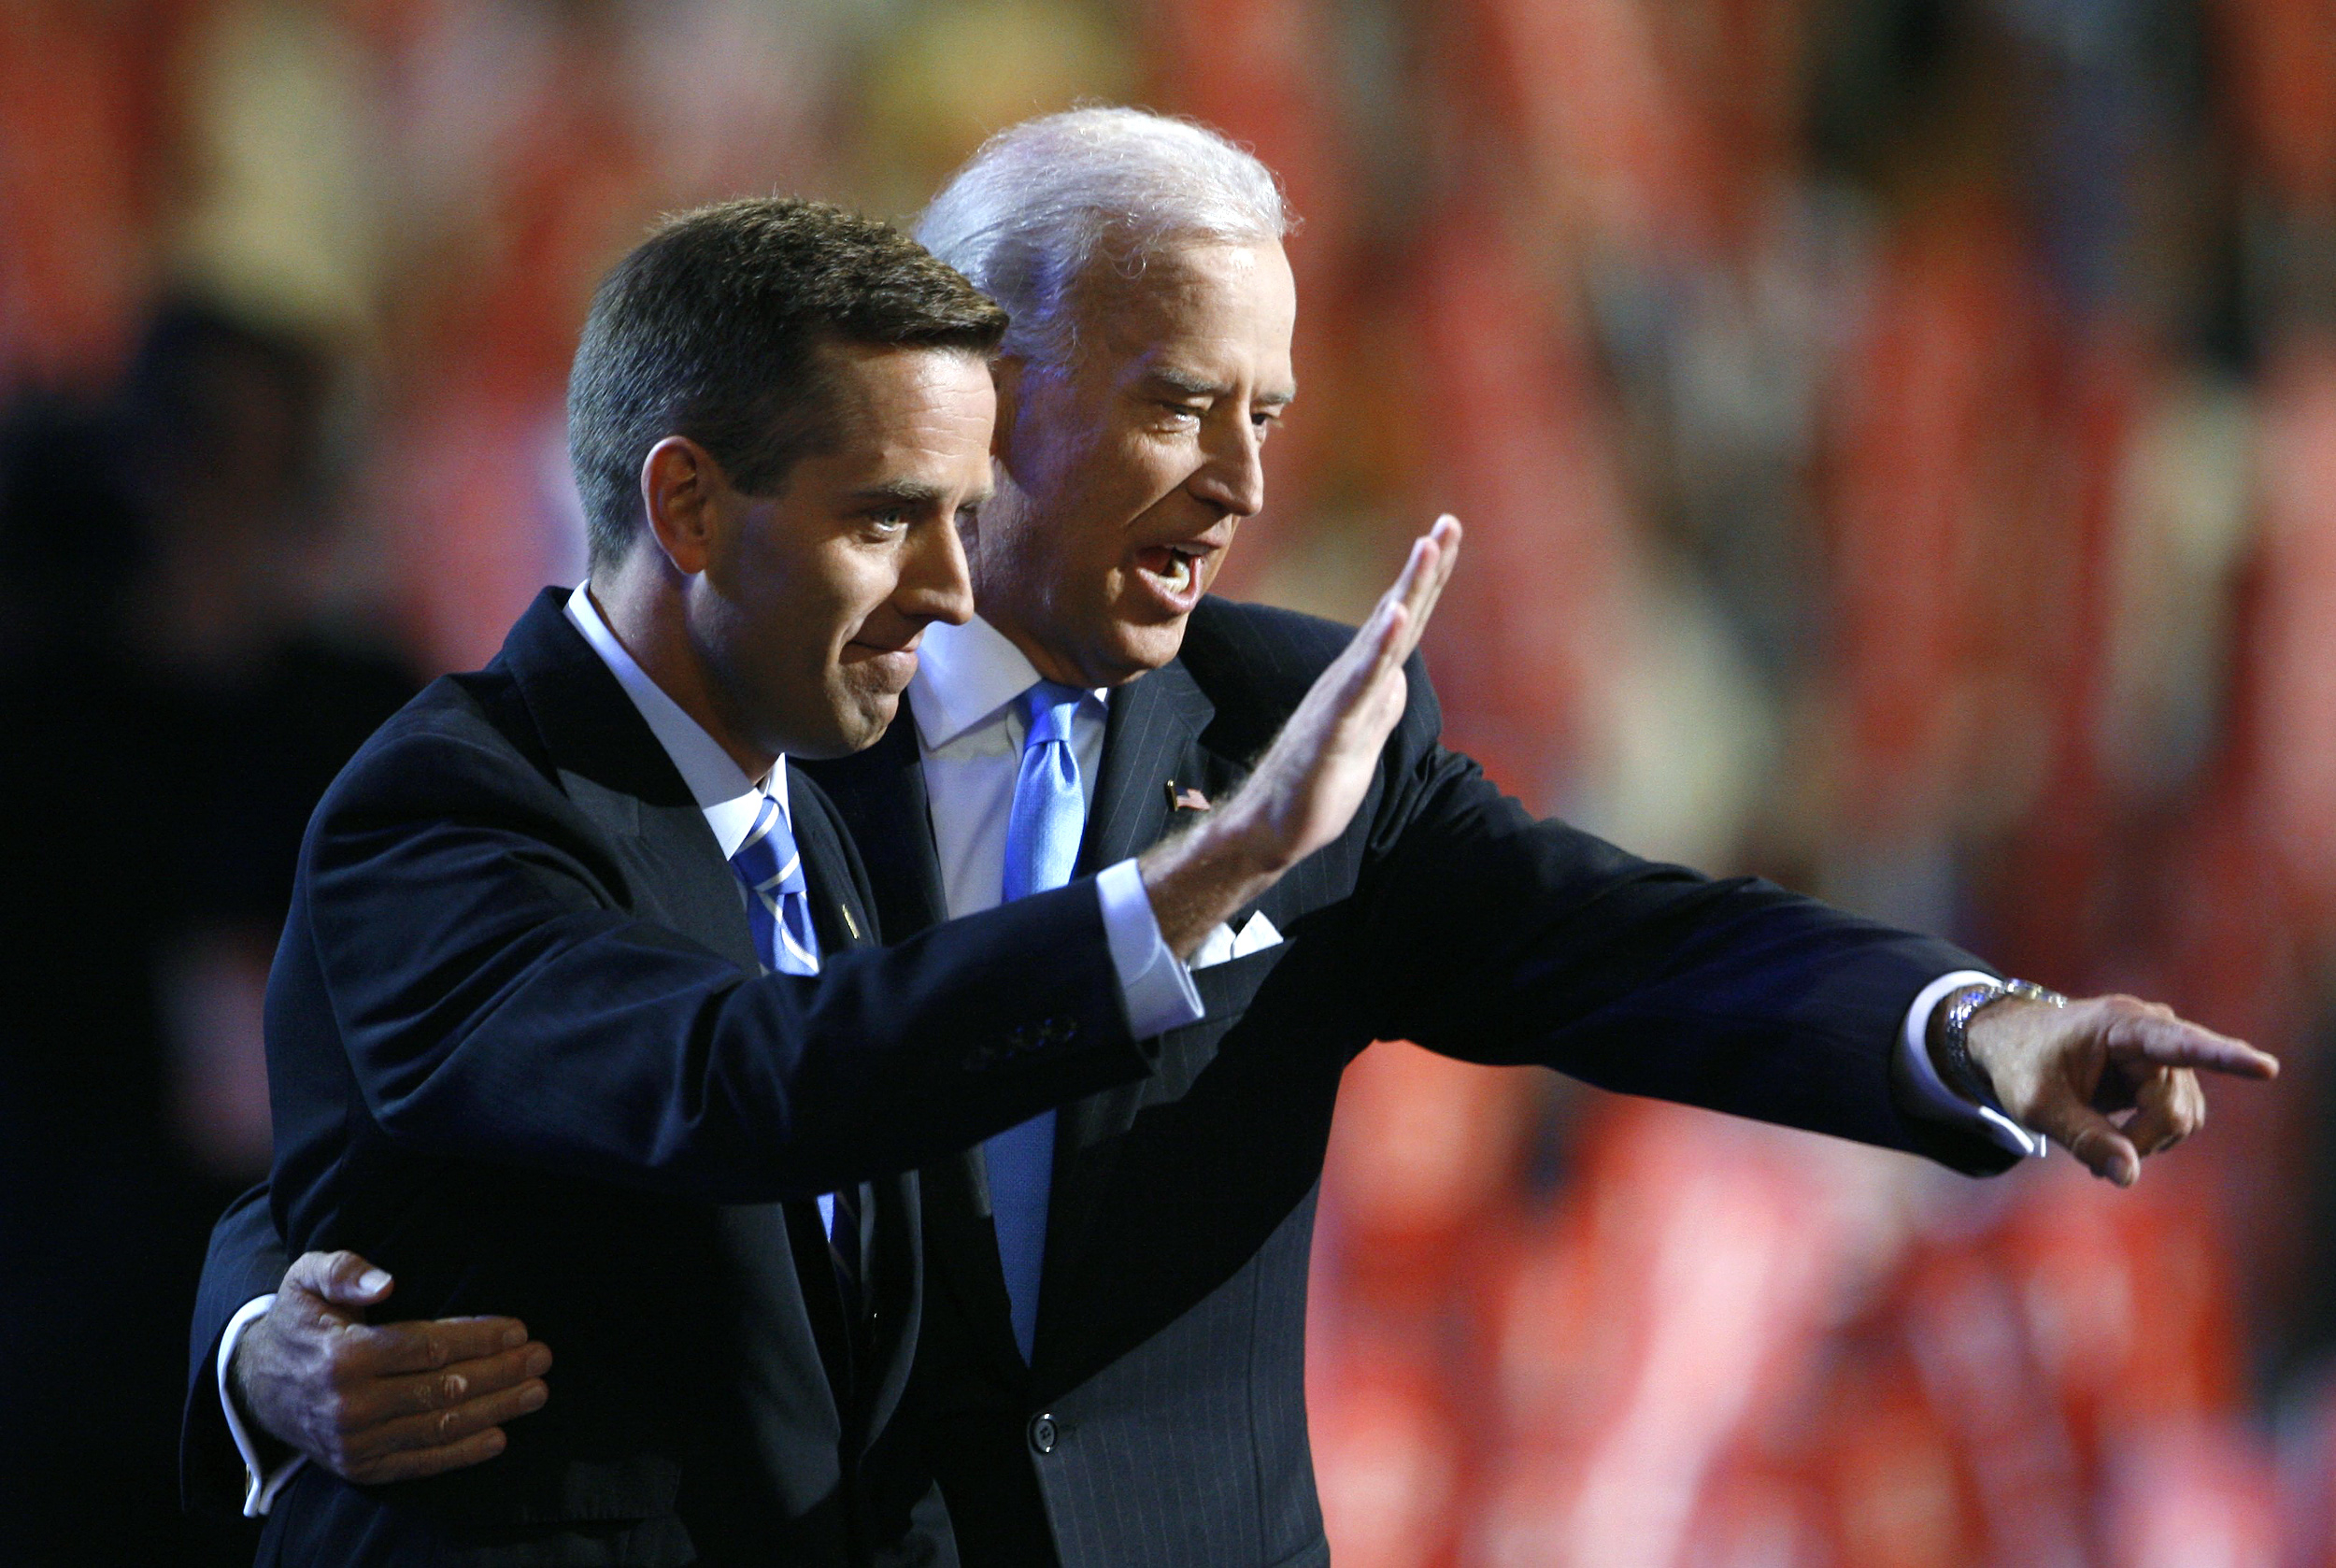 Vice Presidential candidate Joe Biden and his son Beau Biden on stage together at the 2008 Democratic National Convention in Denver